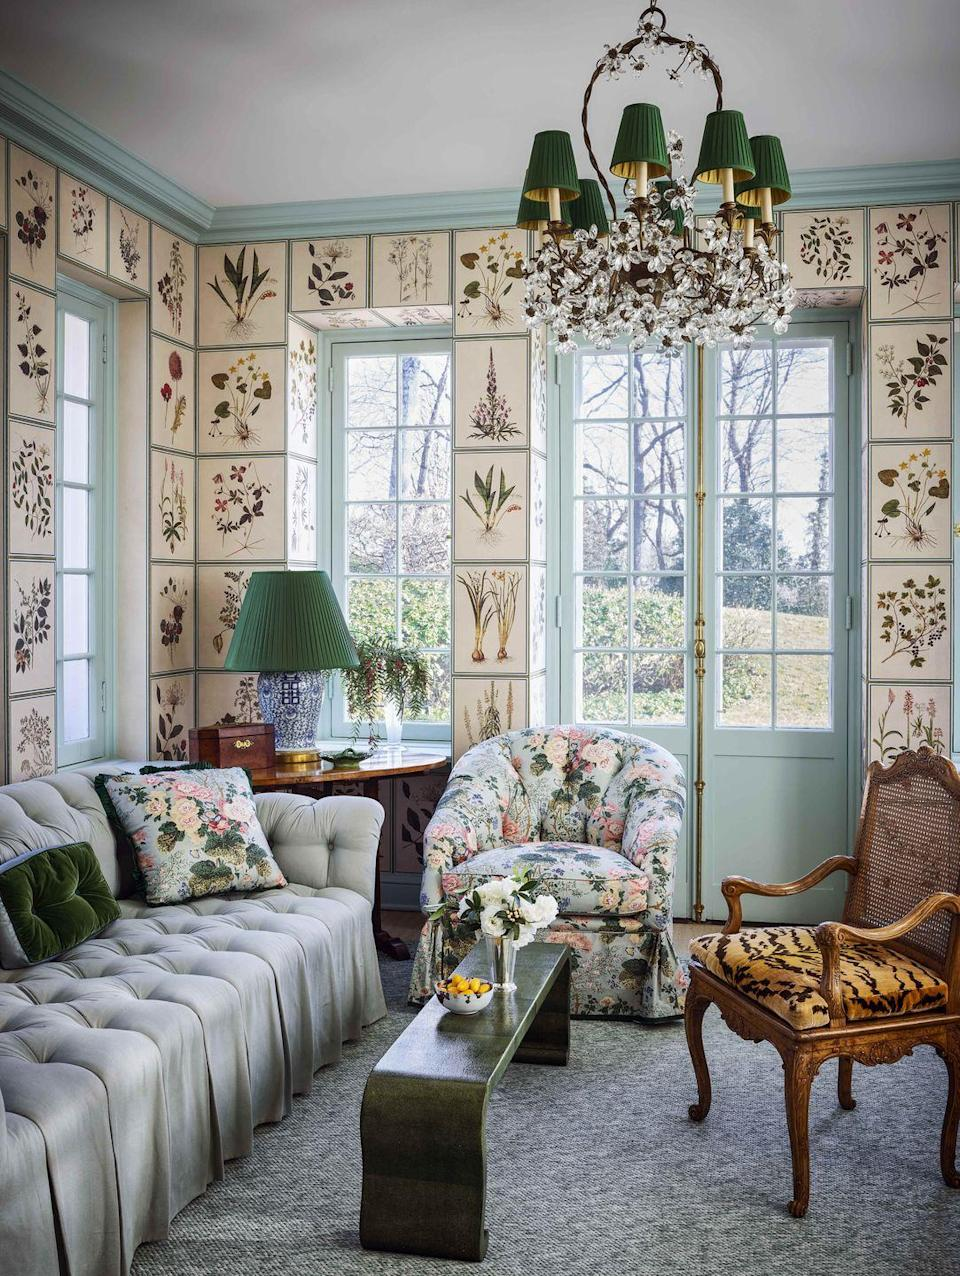 "<p> Miles Redd brought <a href=""https://www.veranda.com/decorating-ideas/house-tours/a34244489/miles-redd-greenwich-house-tour/"" rel=""nofollow noopener"" target=""_blank"" data-ylk=""slk:this Connecticut home"" class=""link rapid-noclick-resp"">this Connecticut home</a>'s office space to life with baby blues, verdant greens, and surprising pops of pattern. A gridded wallpaper by Iskel, a blooming chandelier, and Lee Jofa fabric for the chair and matching throw pillow make the space feel less office and more sunroom.. This comfortable, lush space is as ideal to work in as it is for an afternoon cat-nap.</p>"